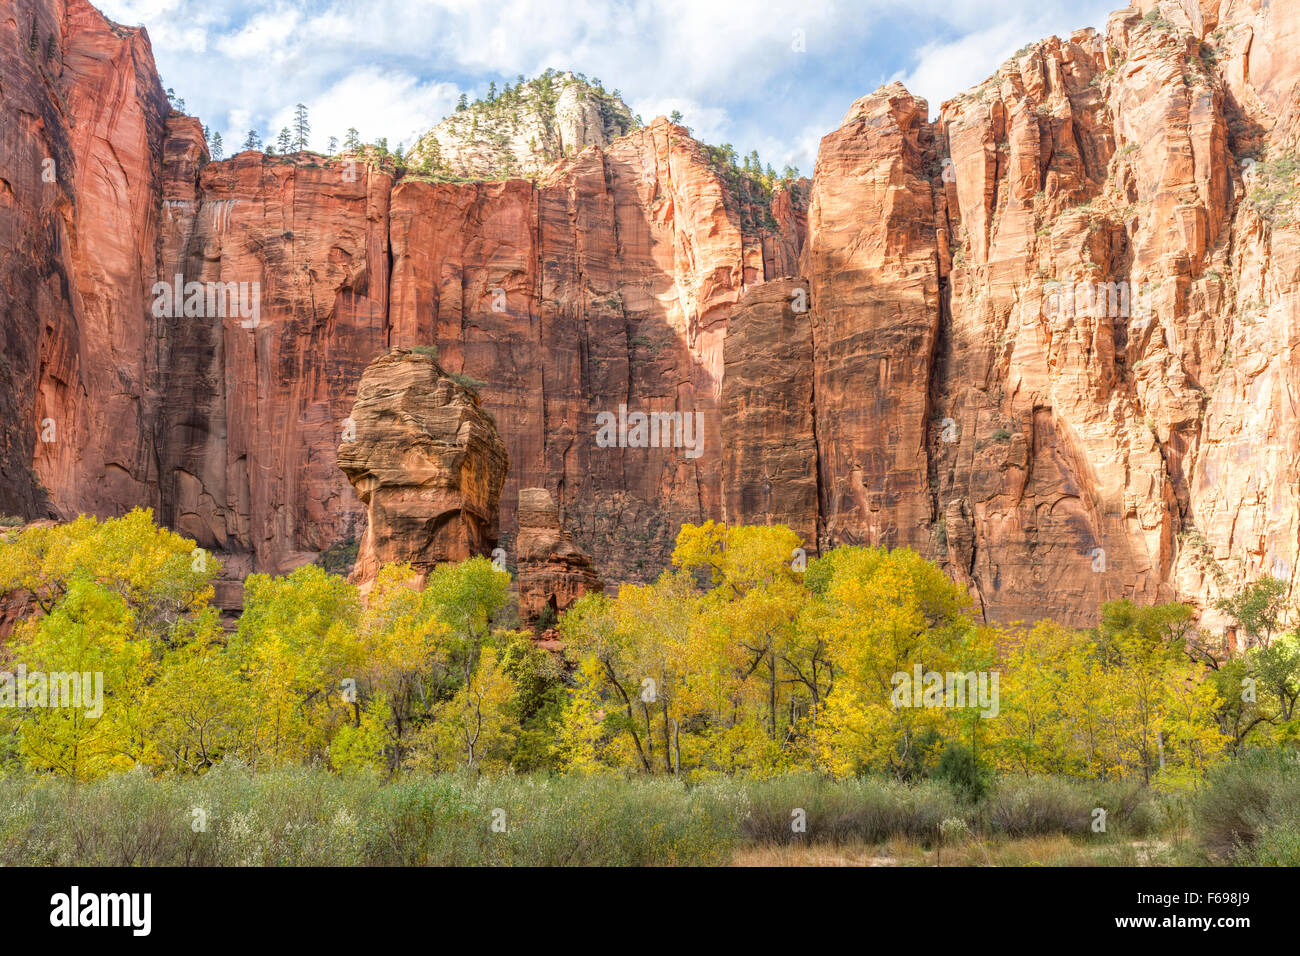 An Autumn afternoon in the Zion Canyon amphitheater known as the Temple of Sinawava, in Zion National Park, Utah. - Stock Image